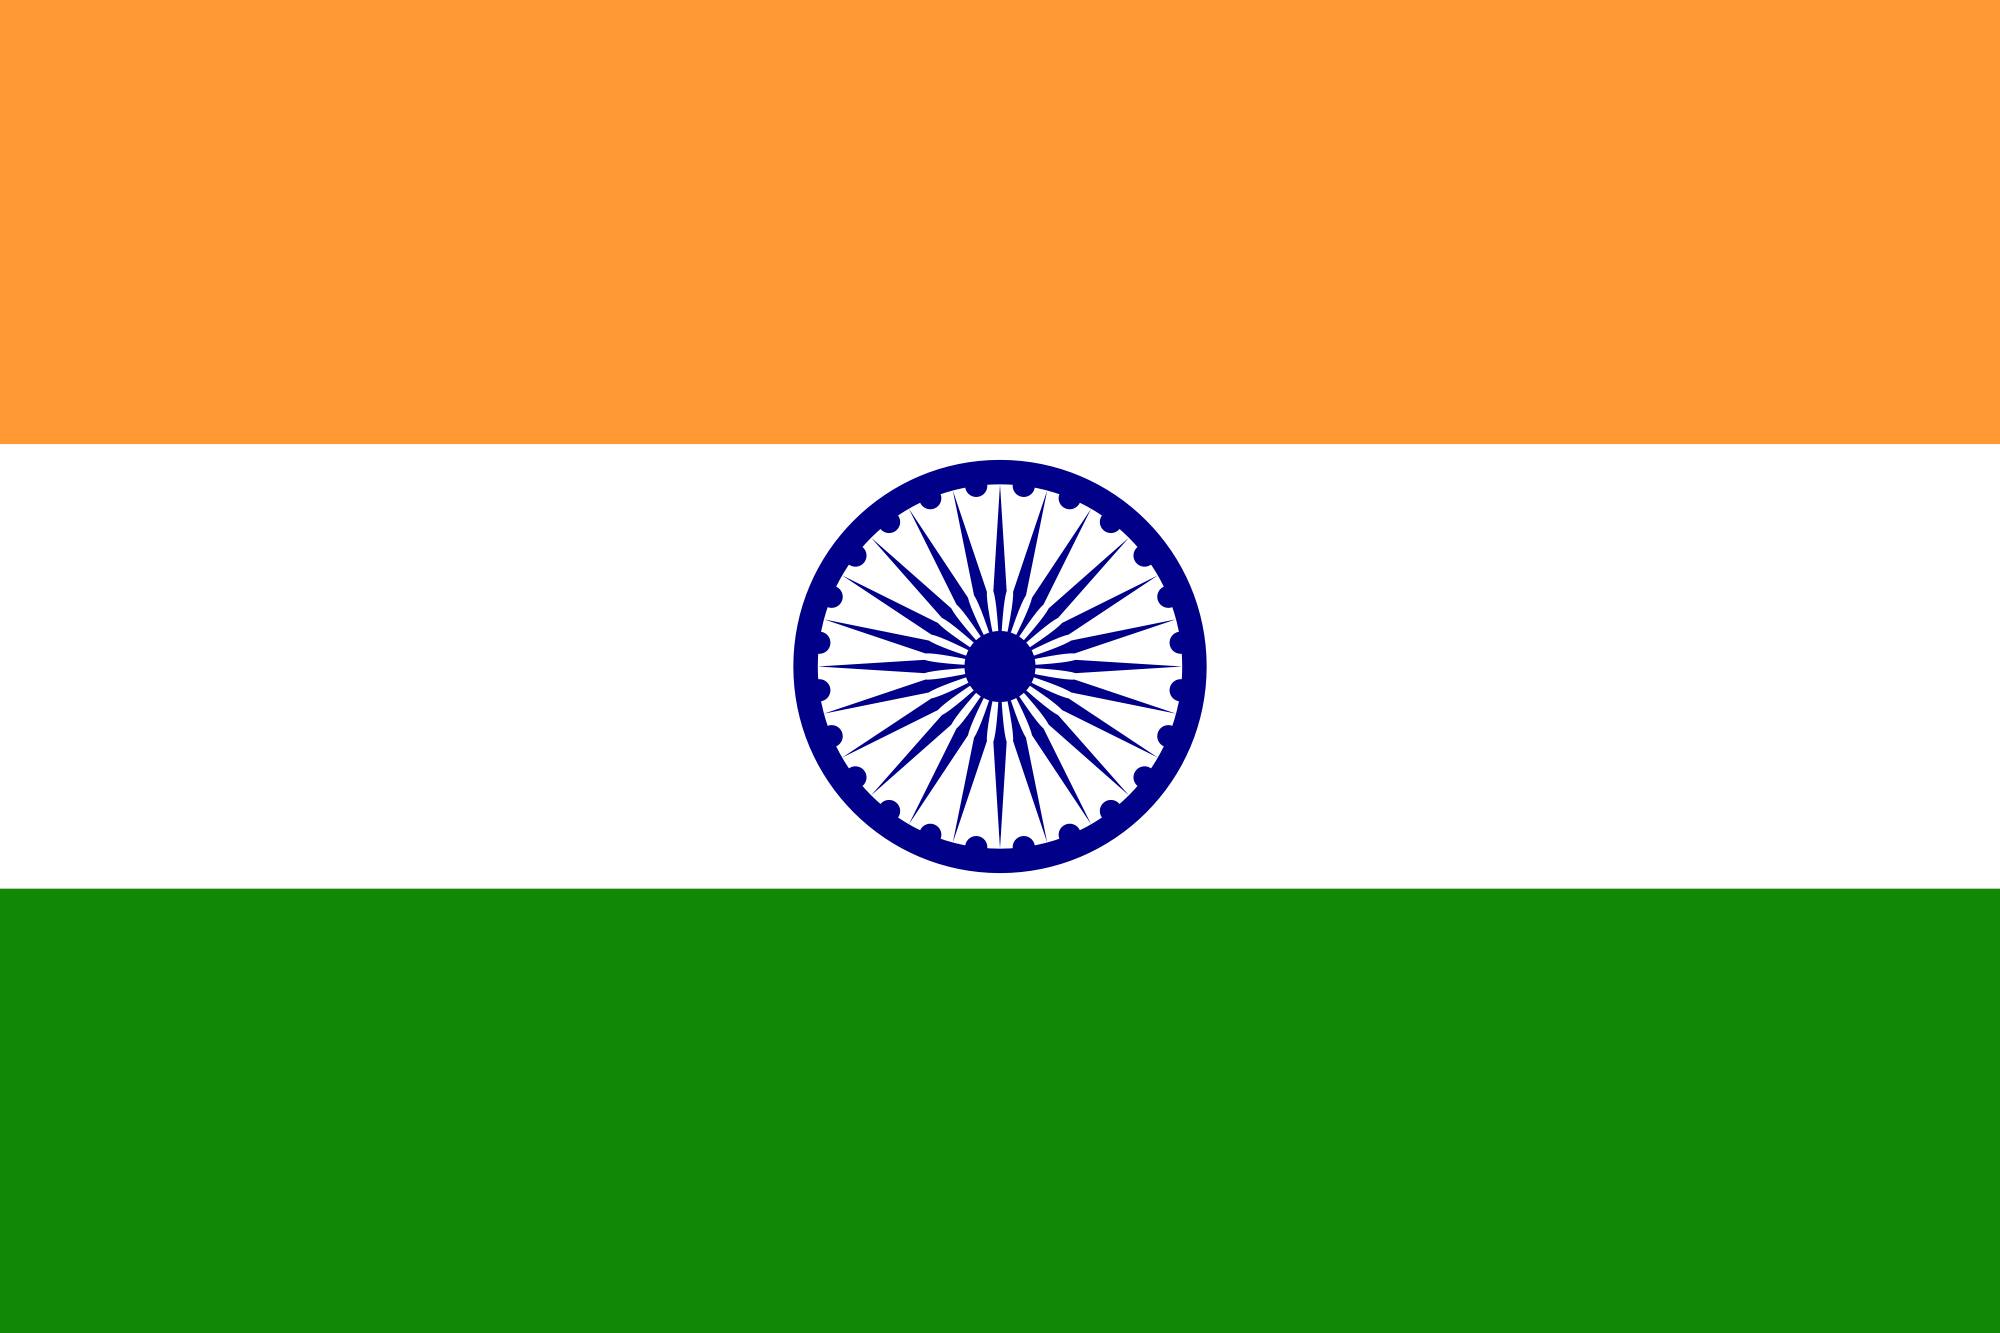 Http Commons Wikimedia Org Wiki File Flag Of India Png